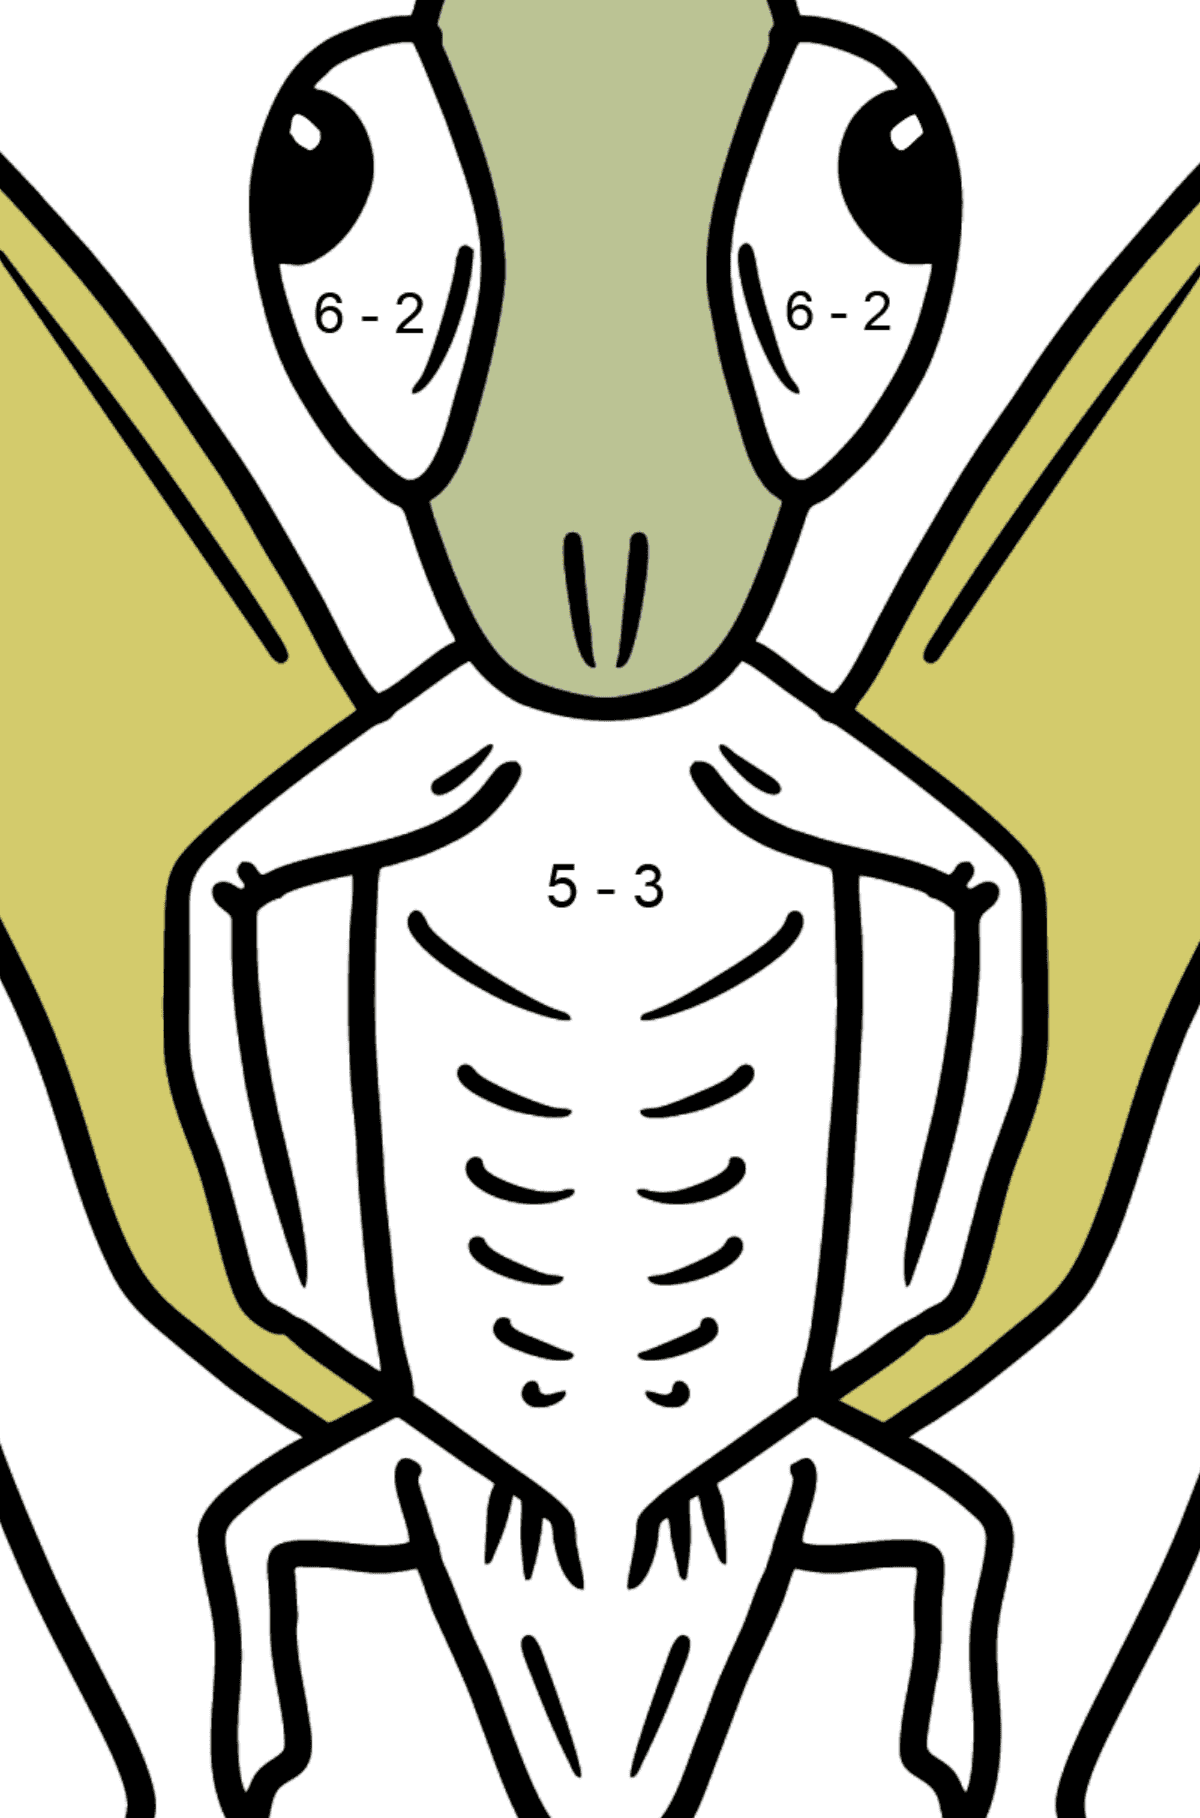 Grasshopper coloring page - Math Coloring - Subtraction for Kids